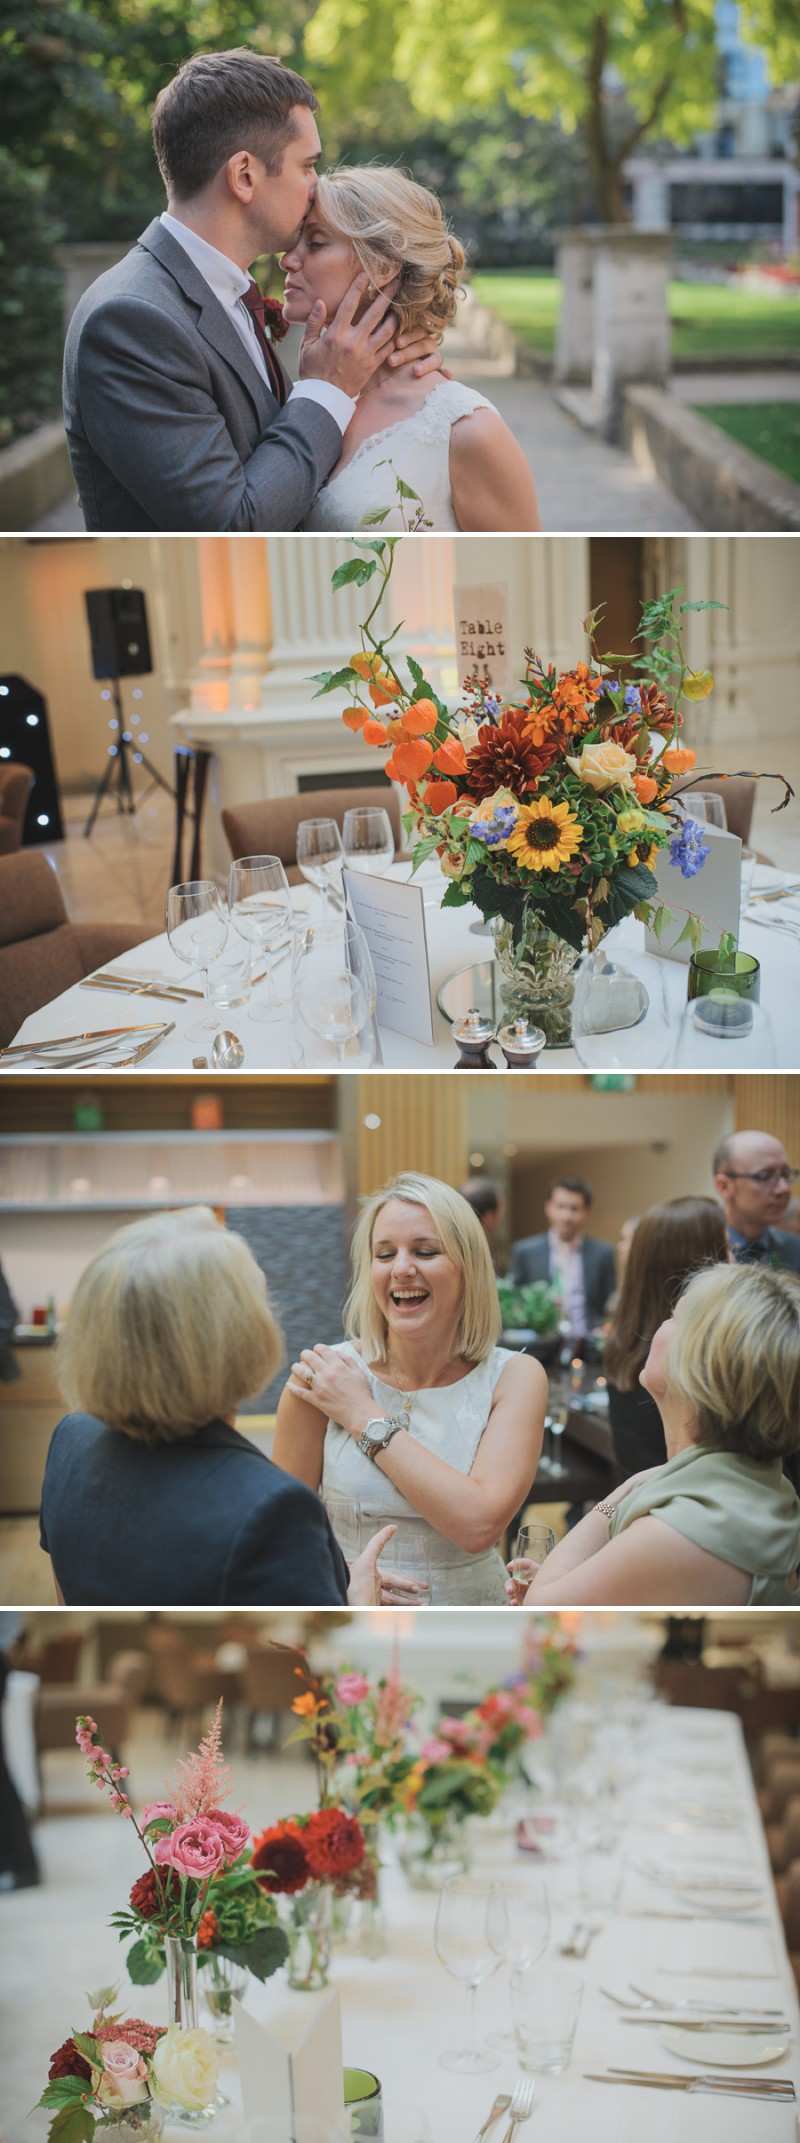 A Modern And Elegant London Wedding At Andaz Hotel With A Handpicked Bouquet And A Lusan Mandongus Dress By O&C Photography_0006